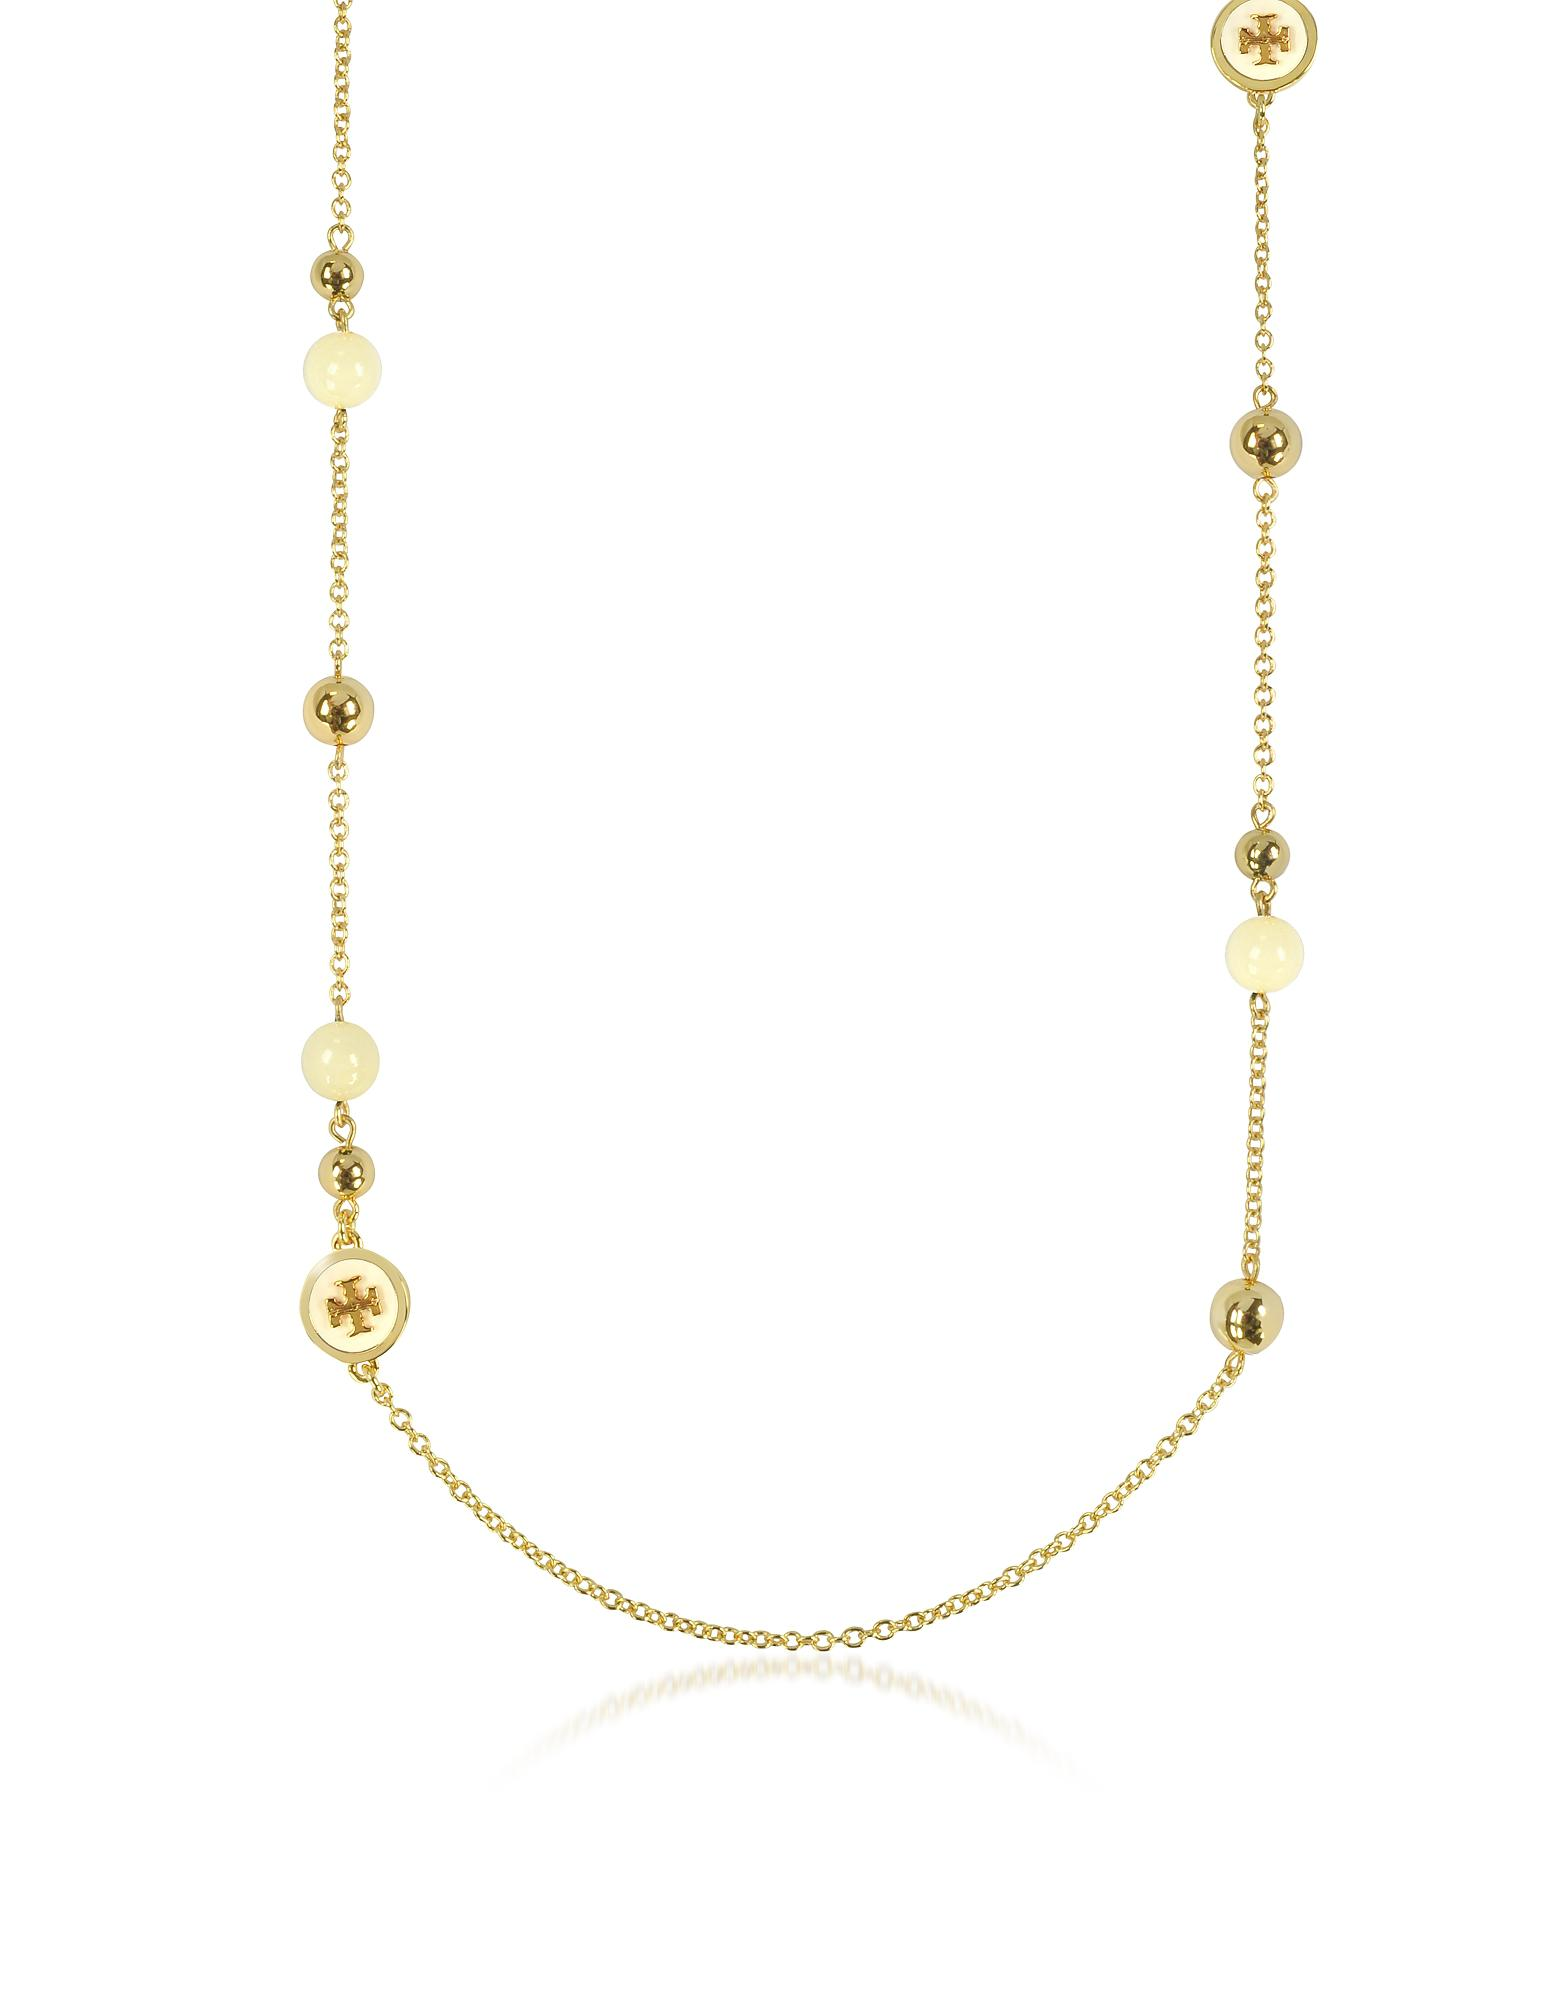 Tory Burch Raised Logo Rosary Necklace in Ivory Tory Gold Brass and Enamel D3YqDXi